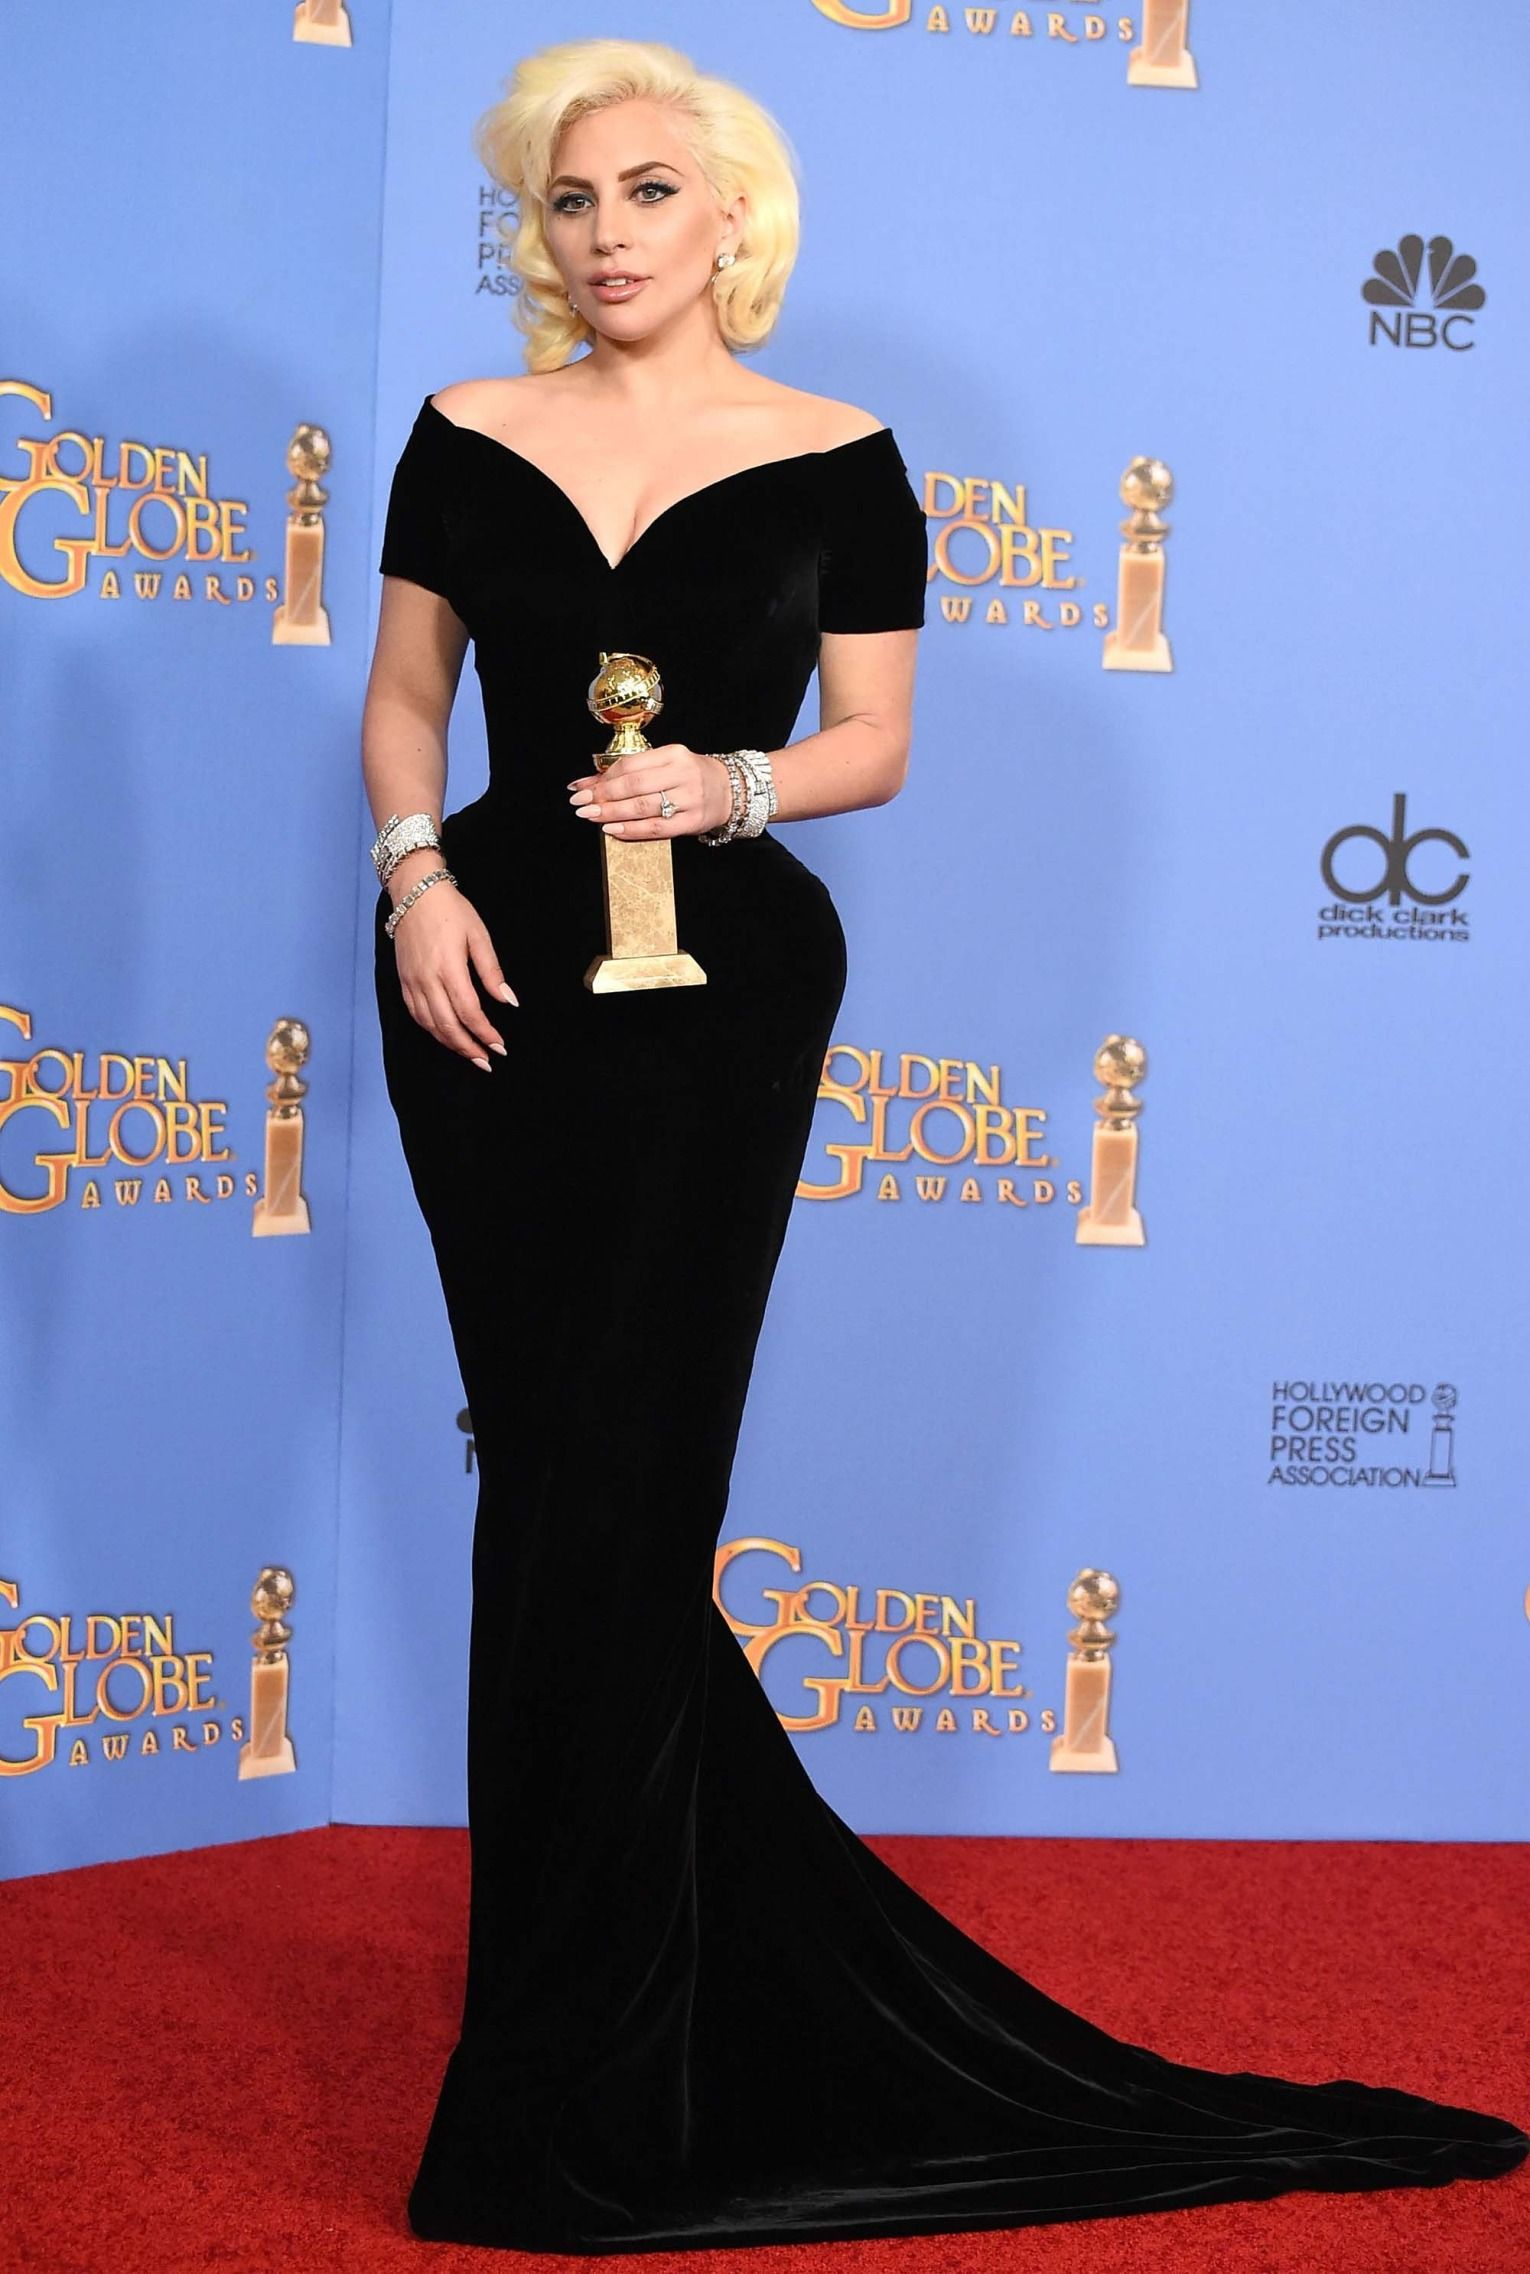 stars who pulled a major red carpet marilyn monroe moment golden